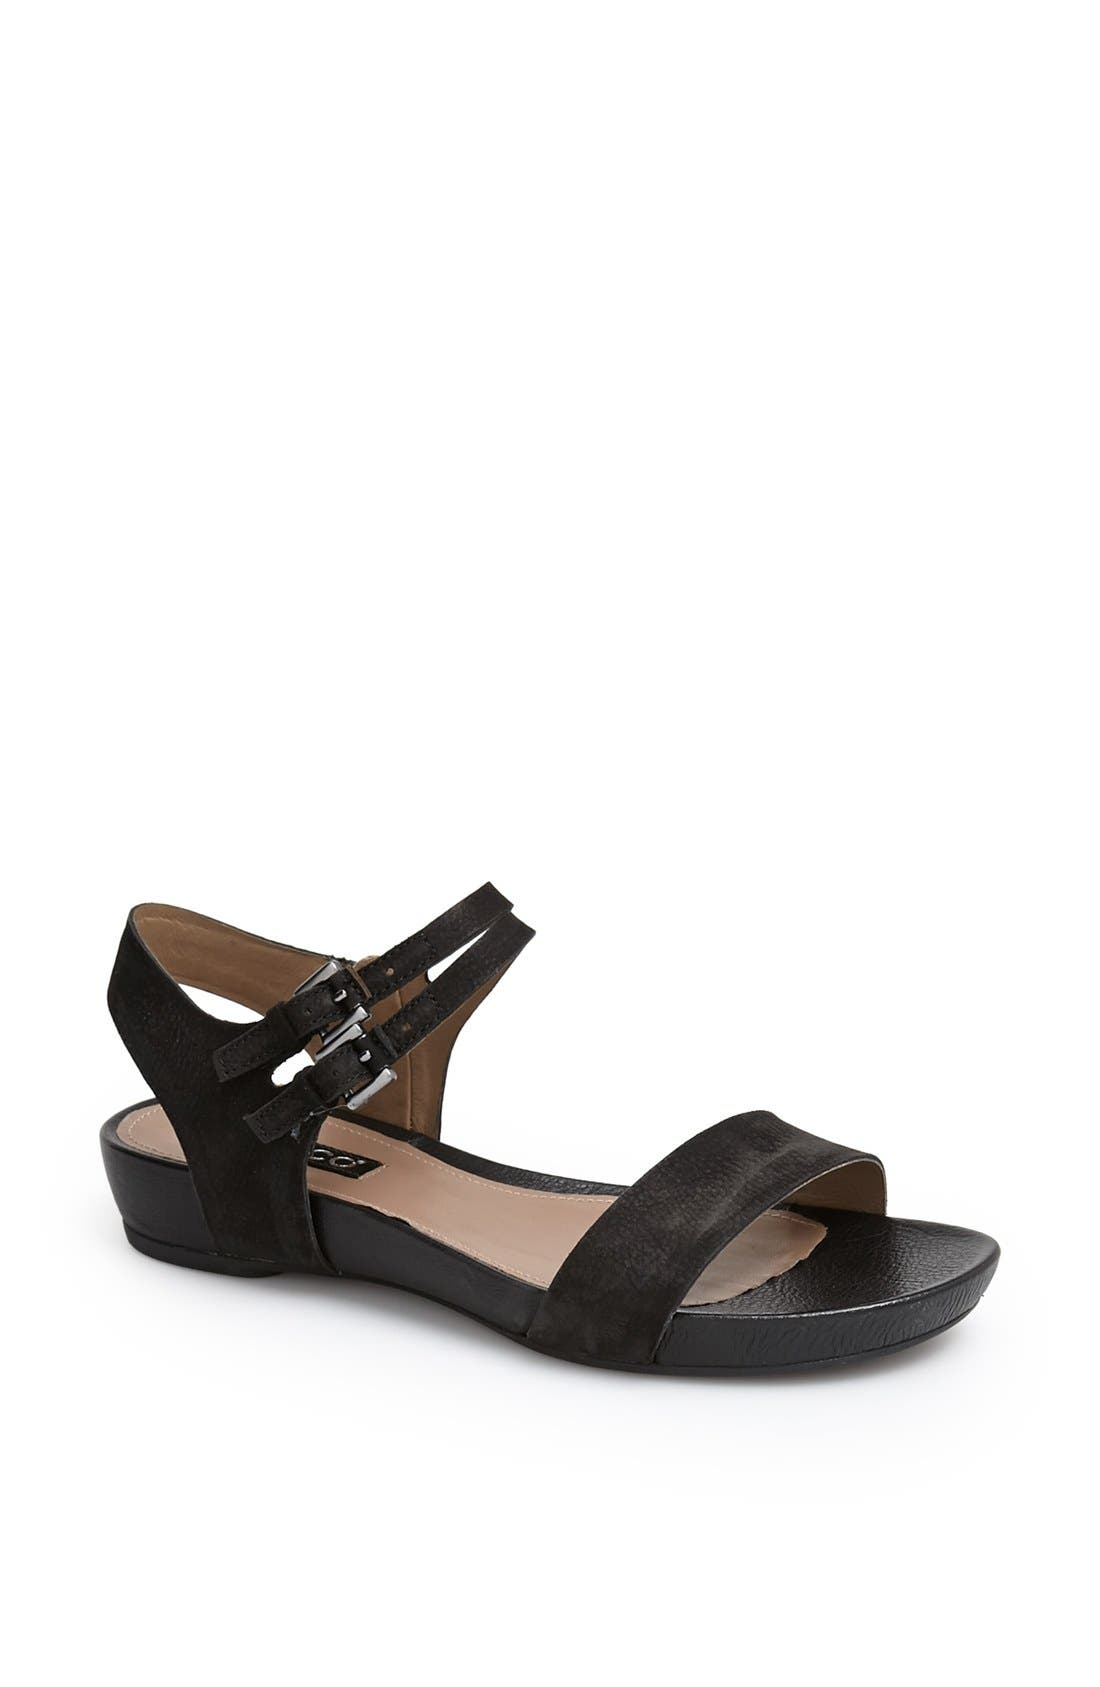 Alternate Image 1 Selected - ECCO 'Rungsted' Leather Sandal